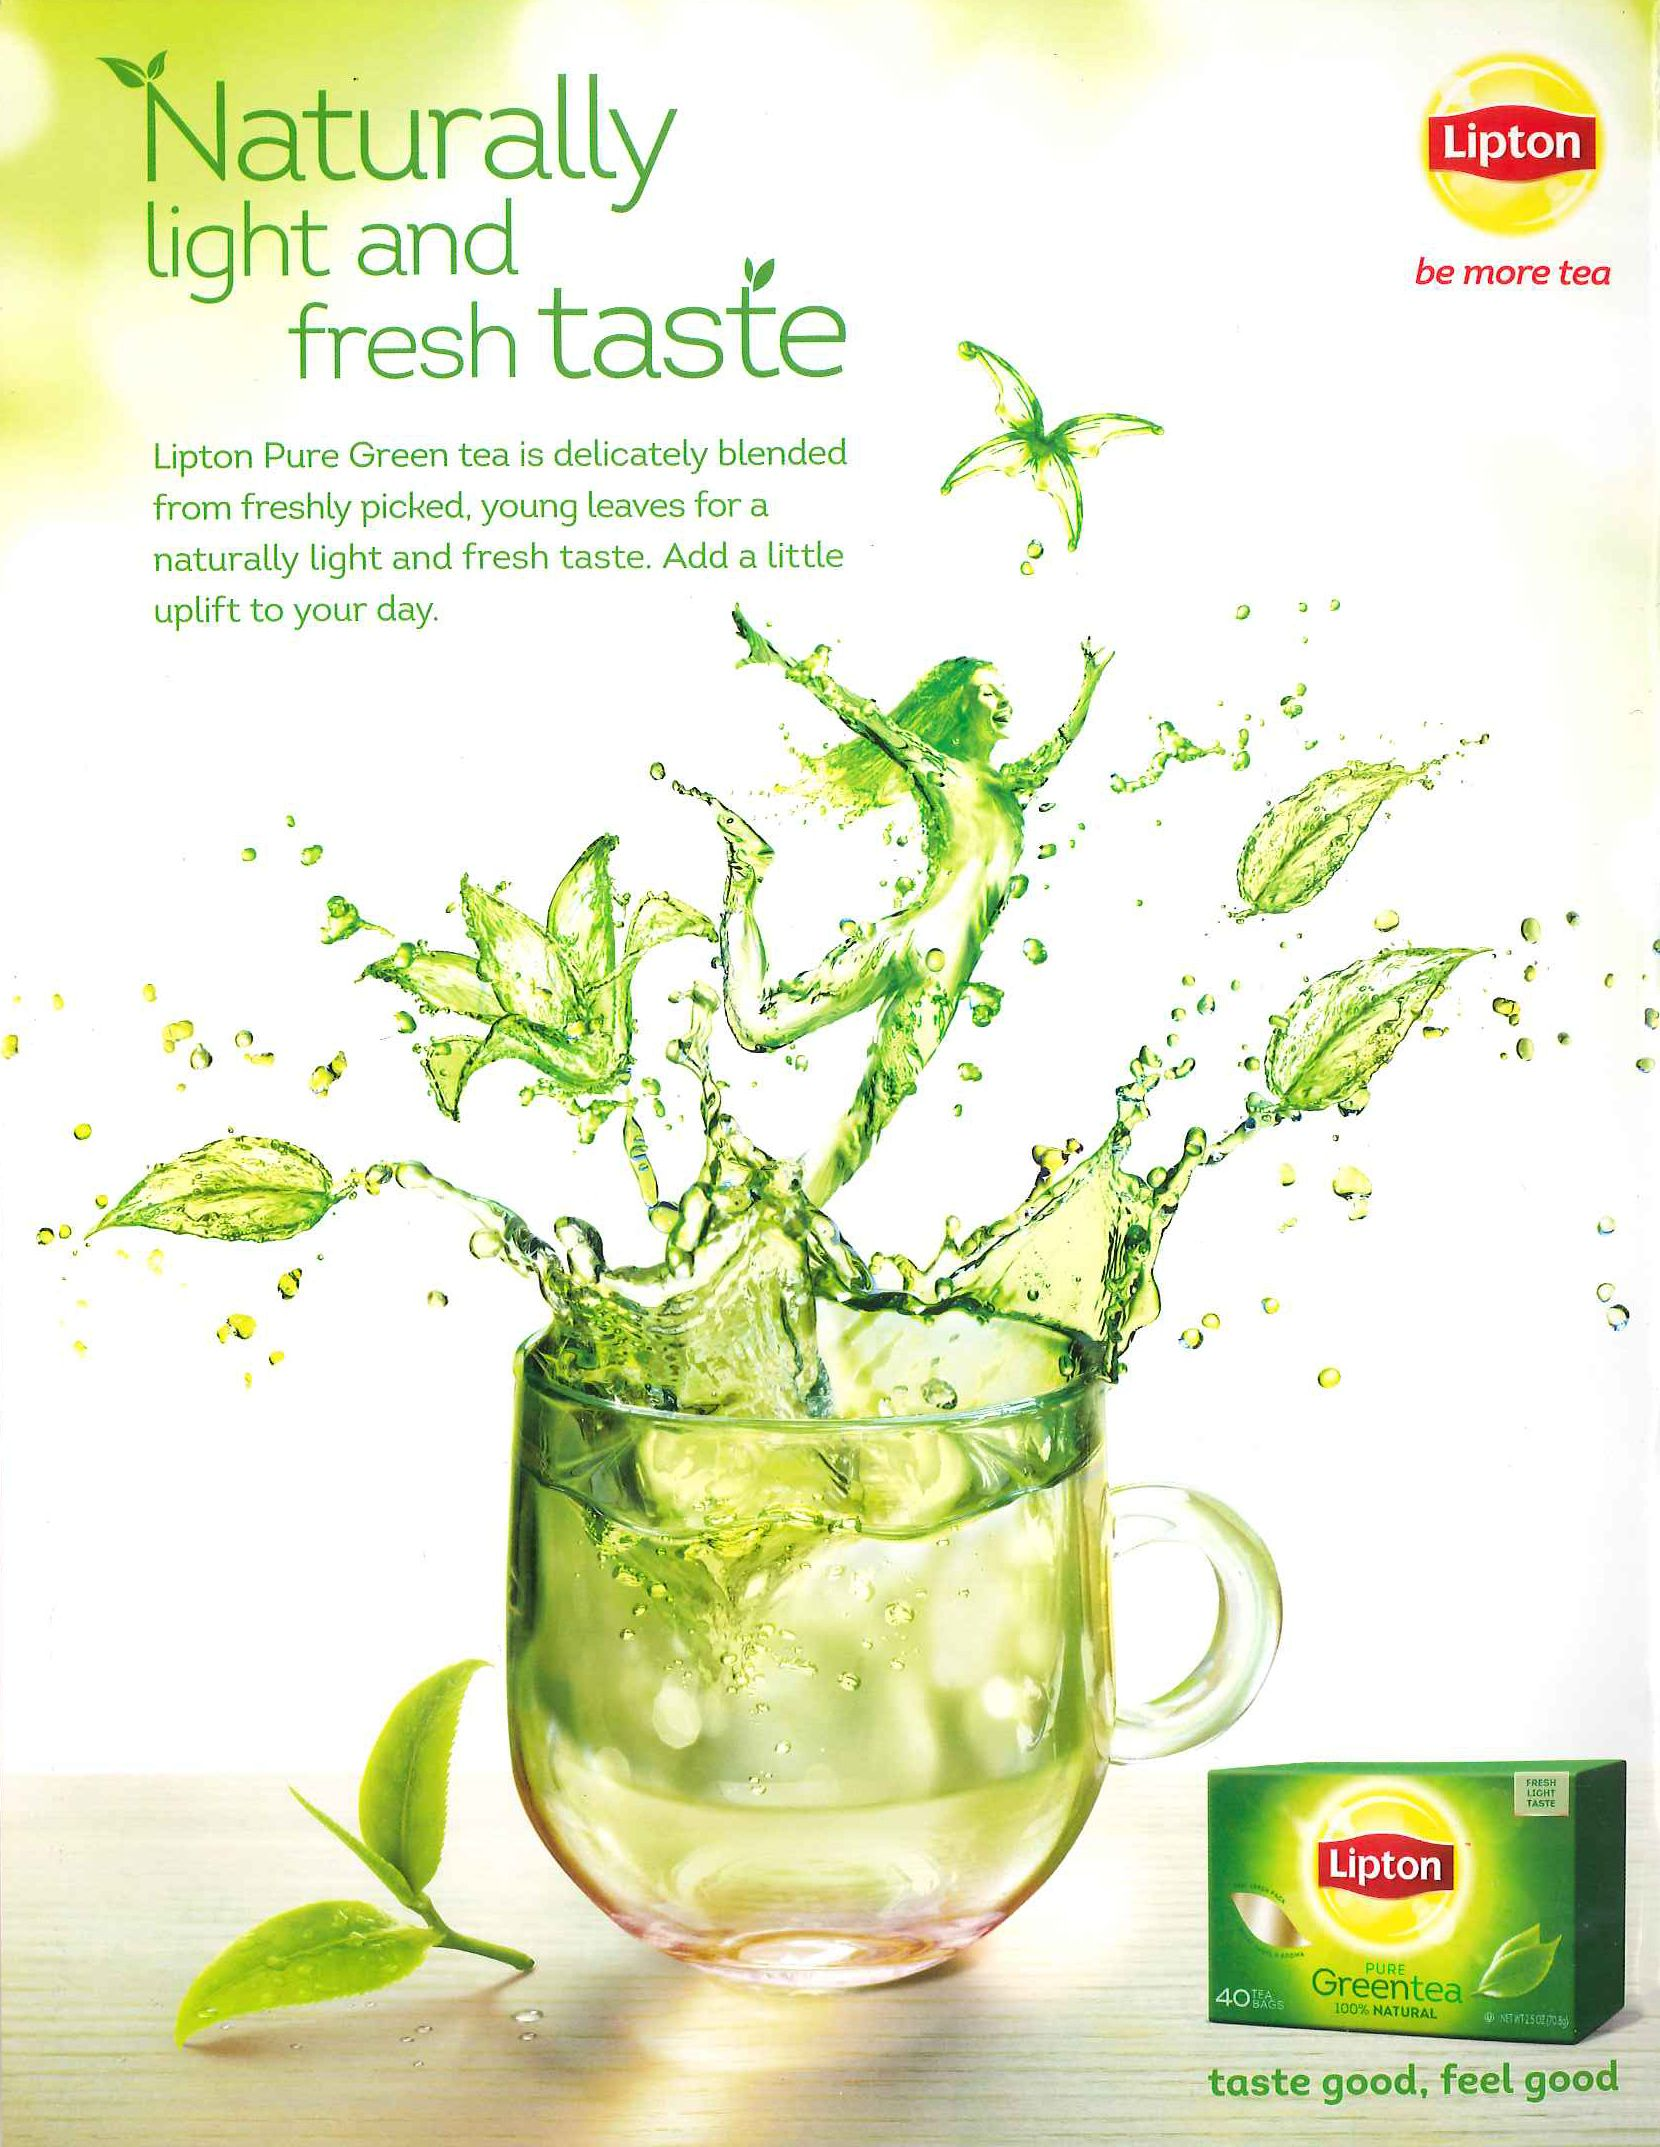 lipton green tea commercial